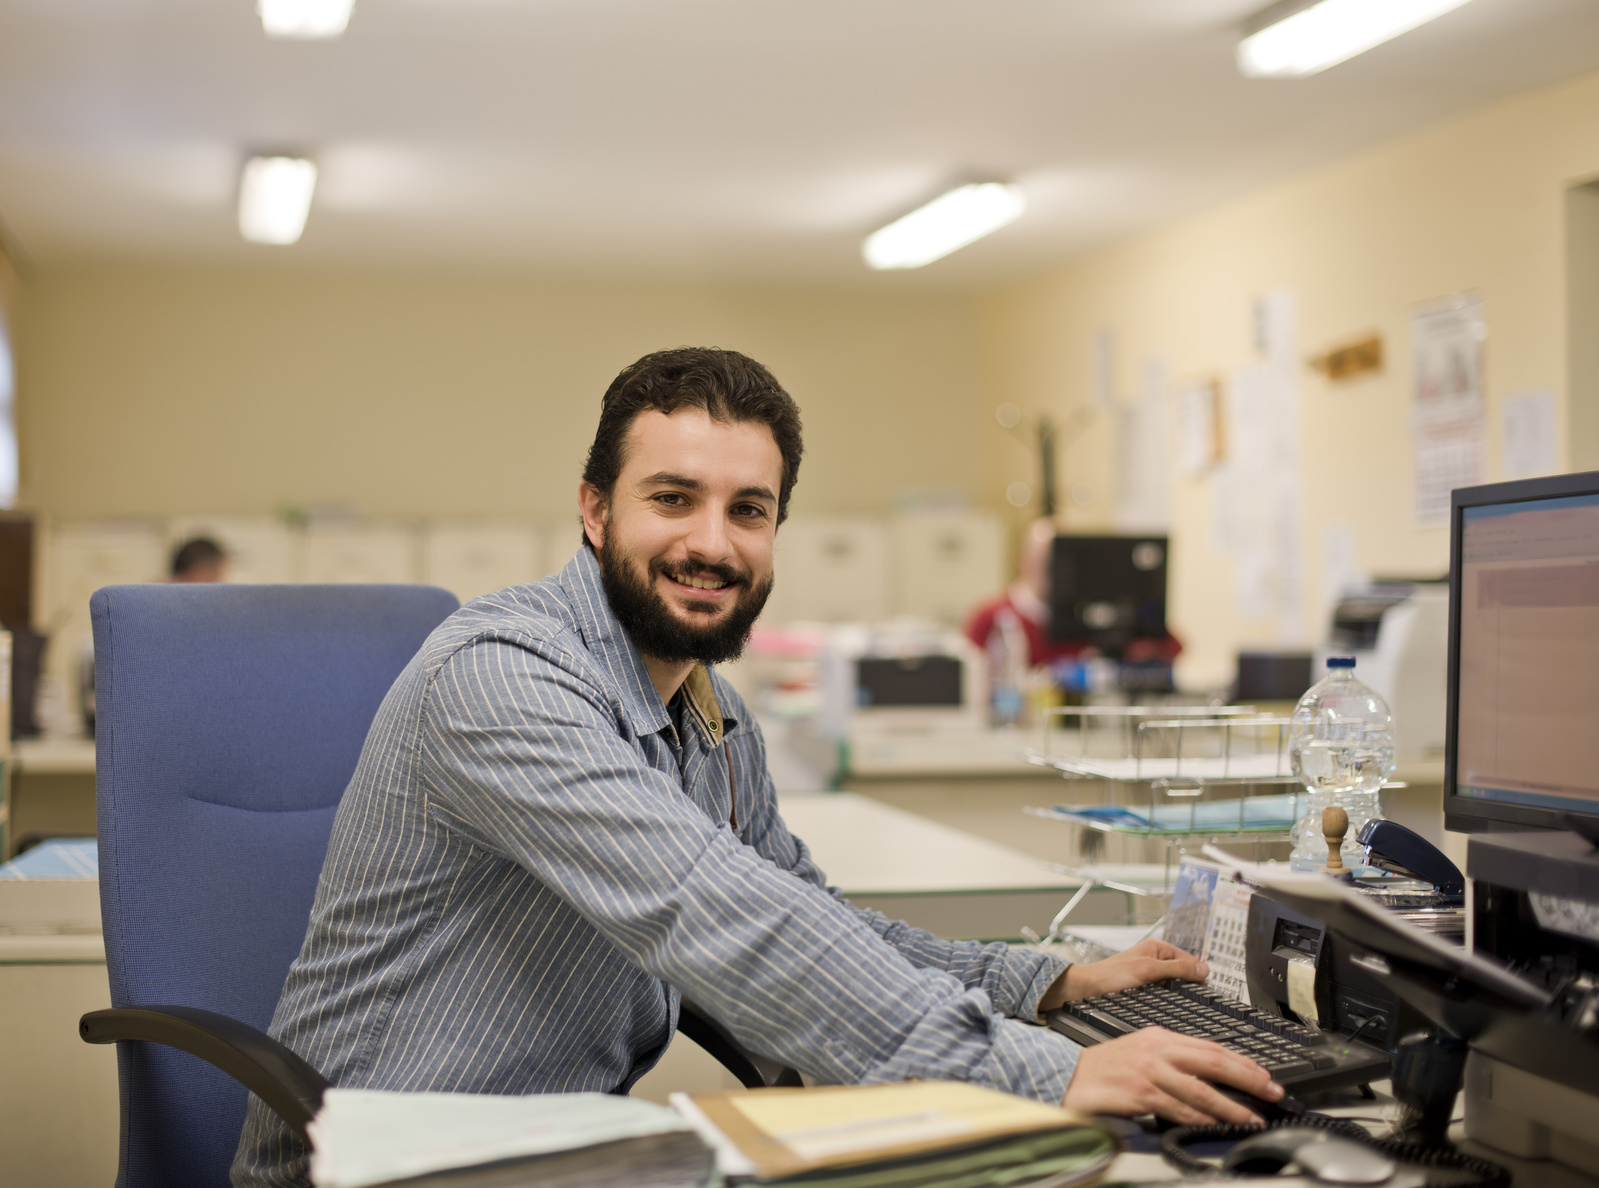 working office business loan processing bearded clerk training processor benefits allbusiness company mortgage fundamentals shutterstock